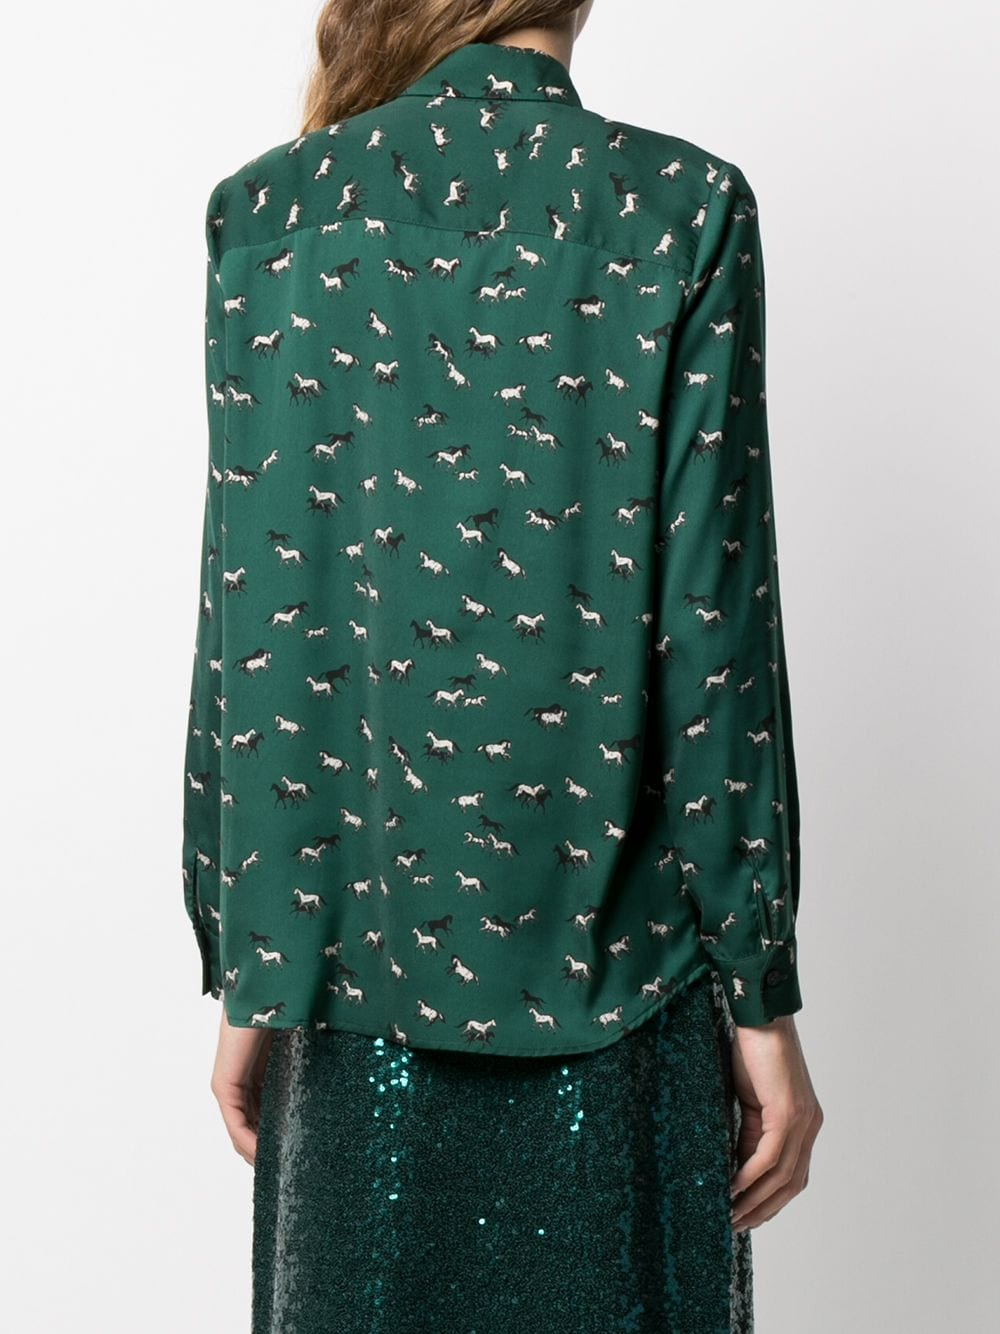 Green horse-print shirt featuring horse print and ruffled detailing ALTEA |  | 206462543